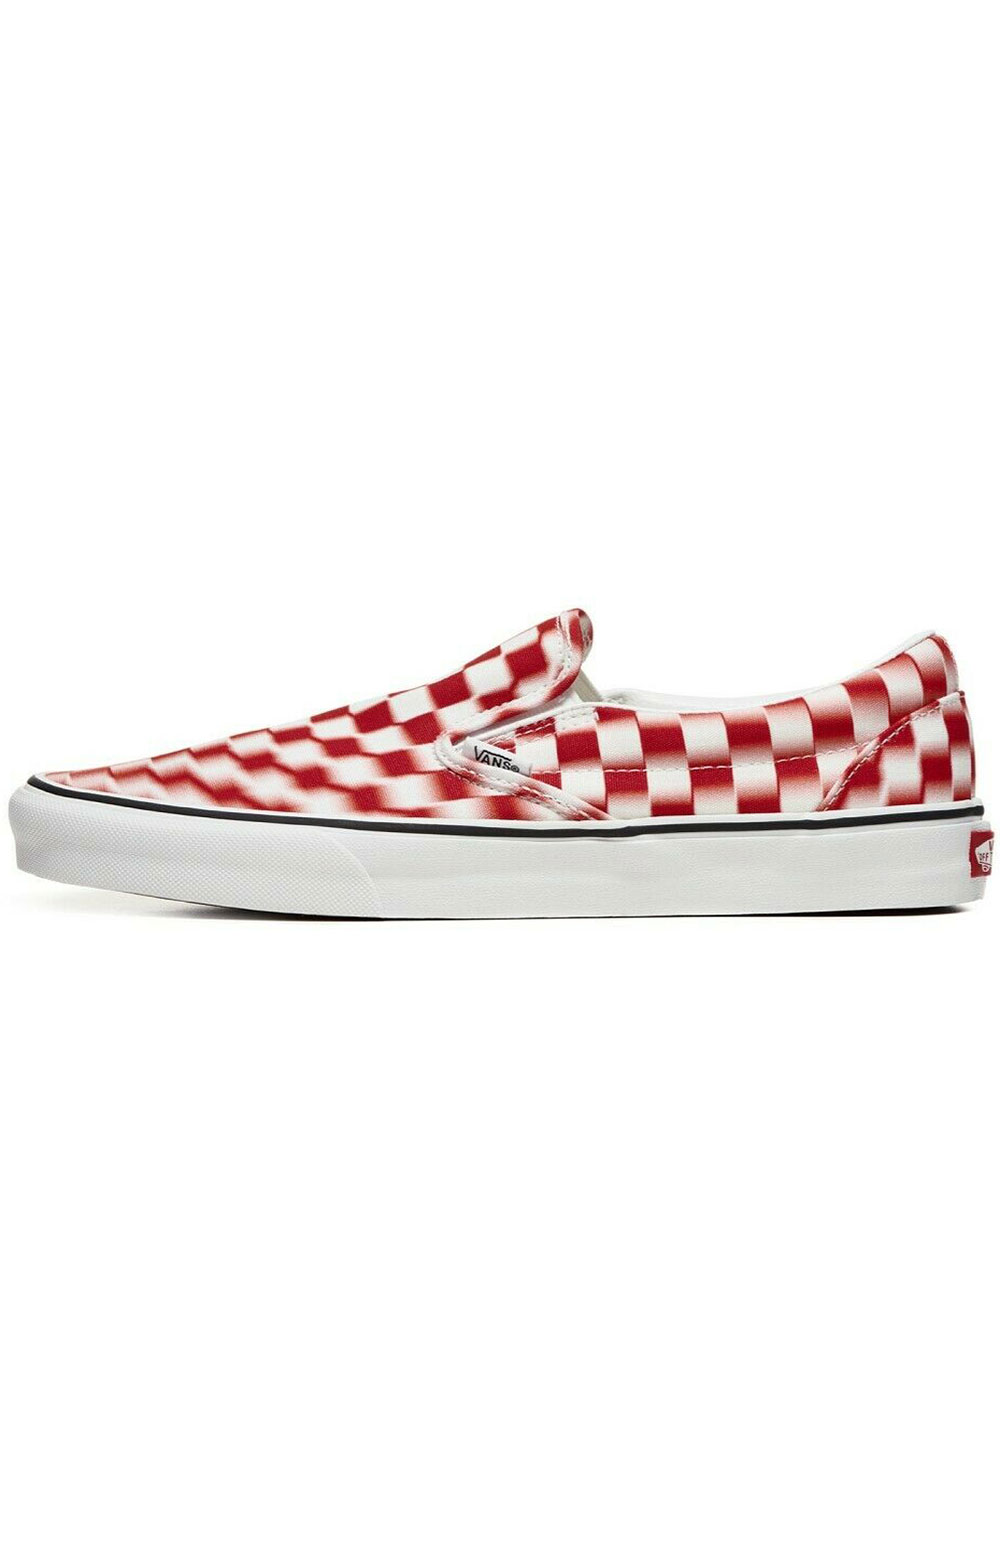 (U3817Z) Blur Check Classic Slip-On Shoe - Ture White/Red 5